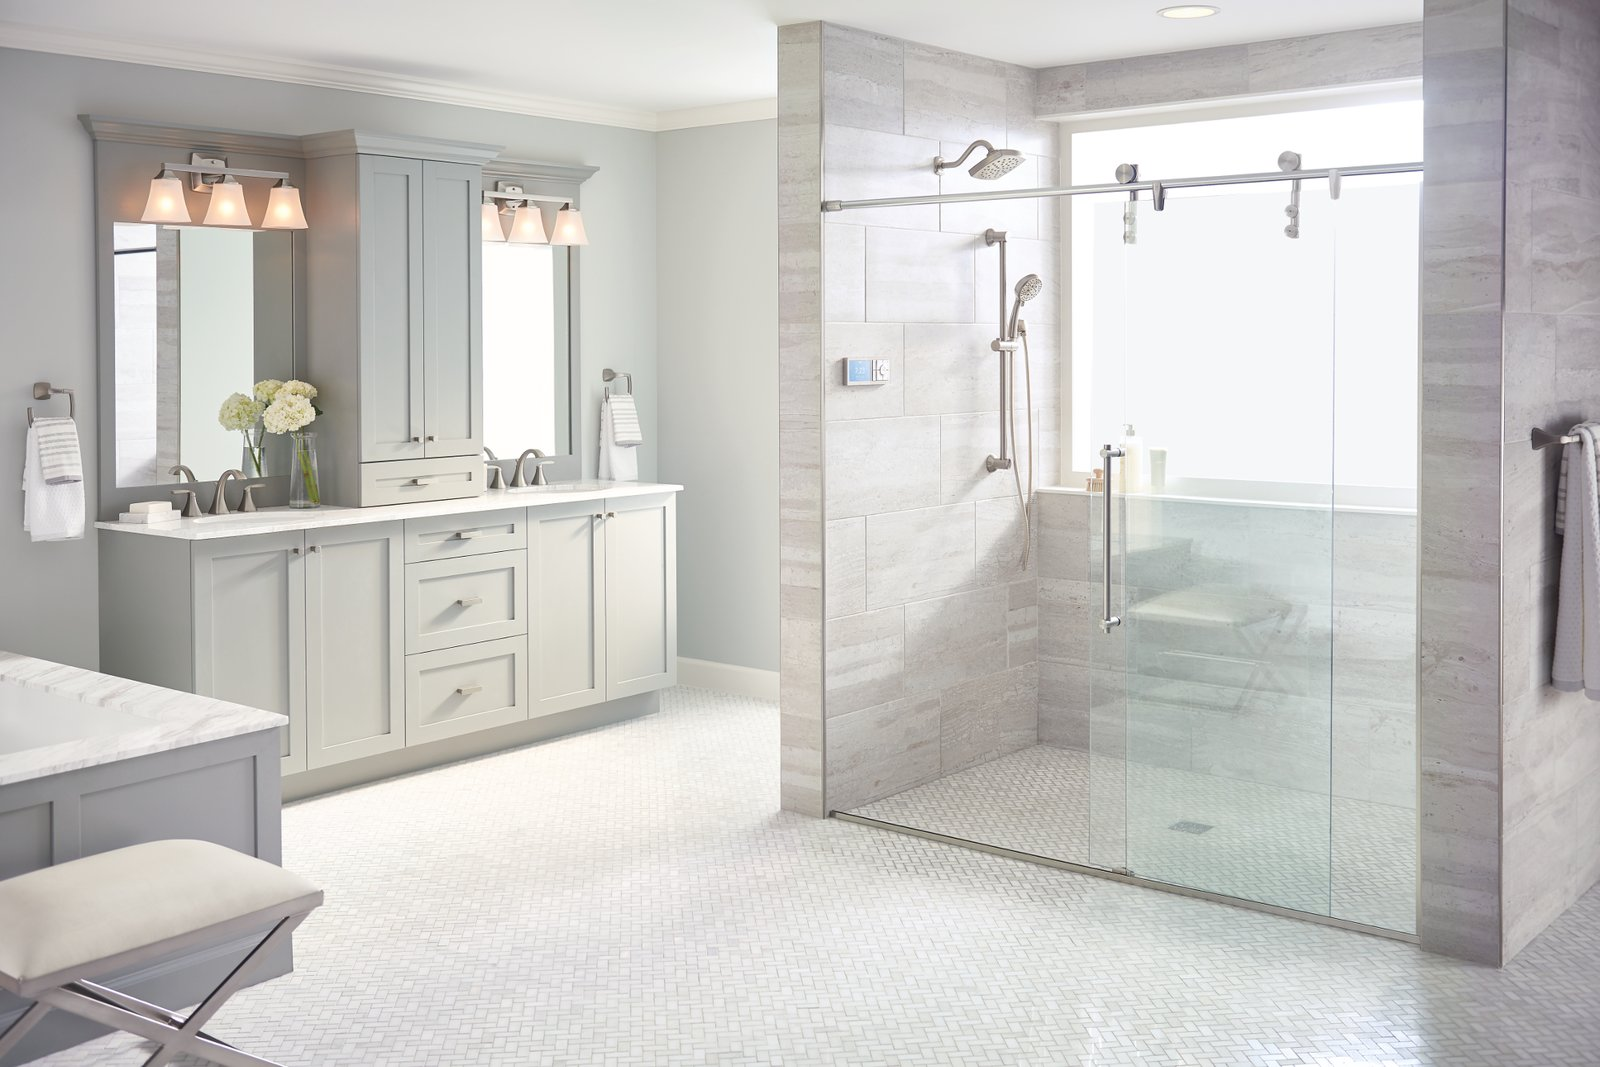 Photo 5 of 5 in Create Your Personal Oasis With U by Moen Shower